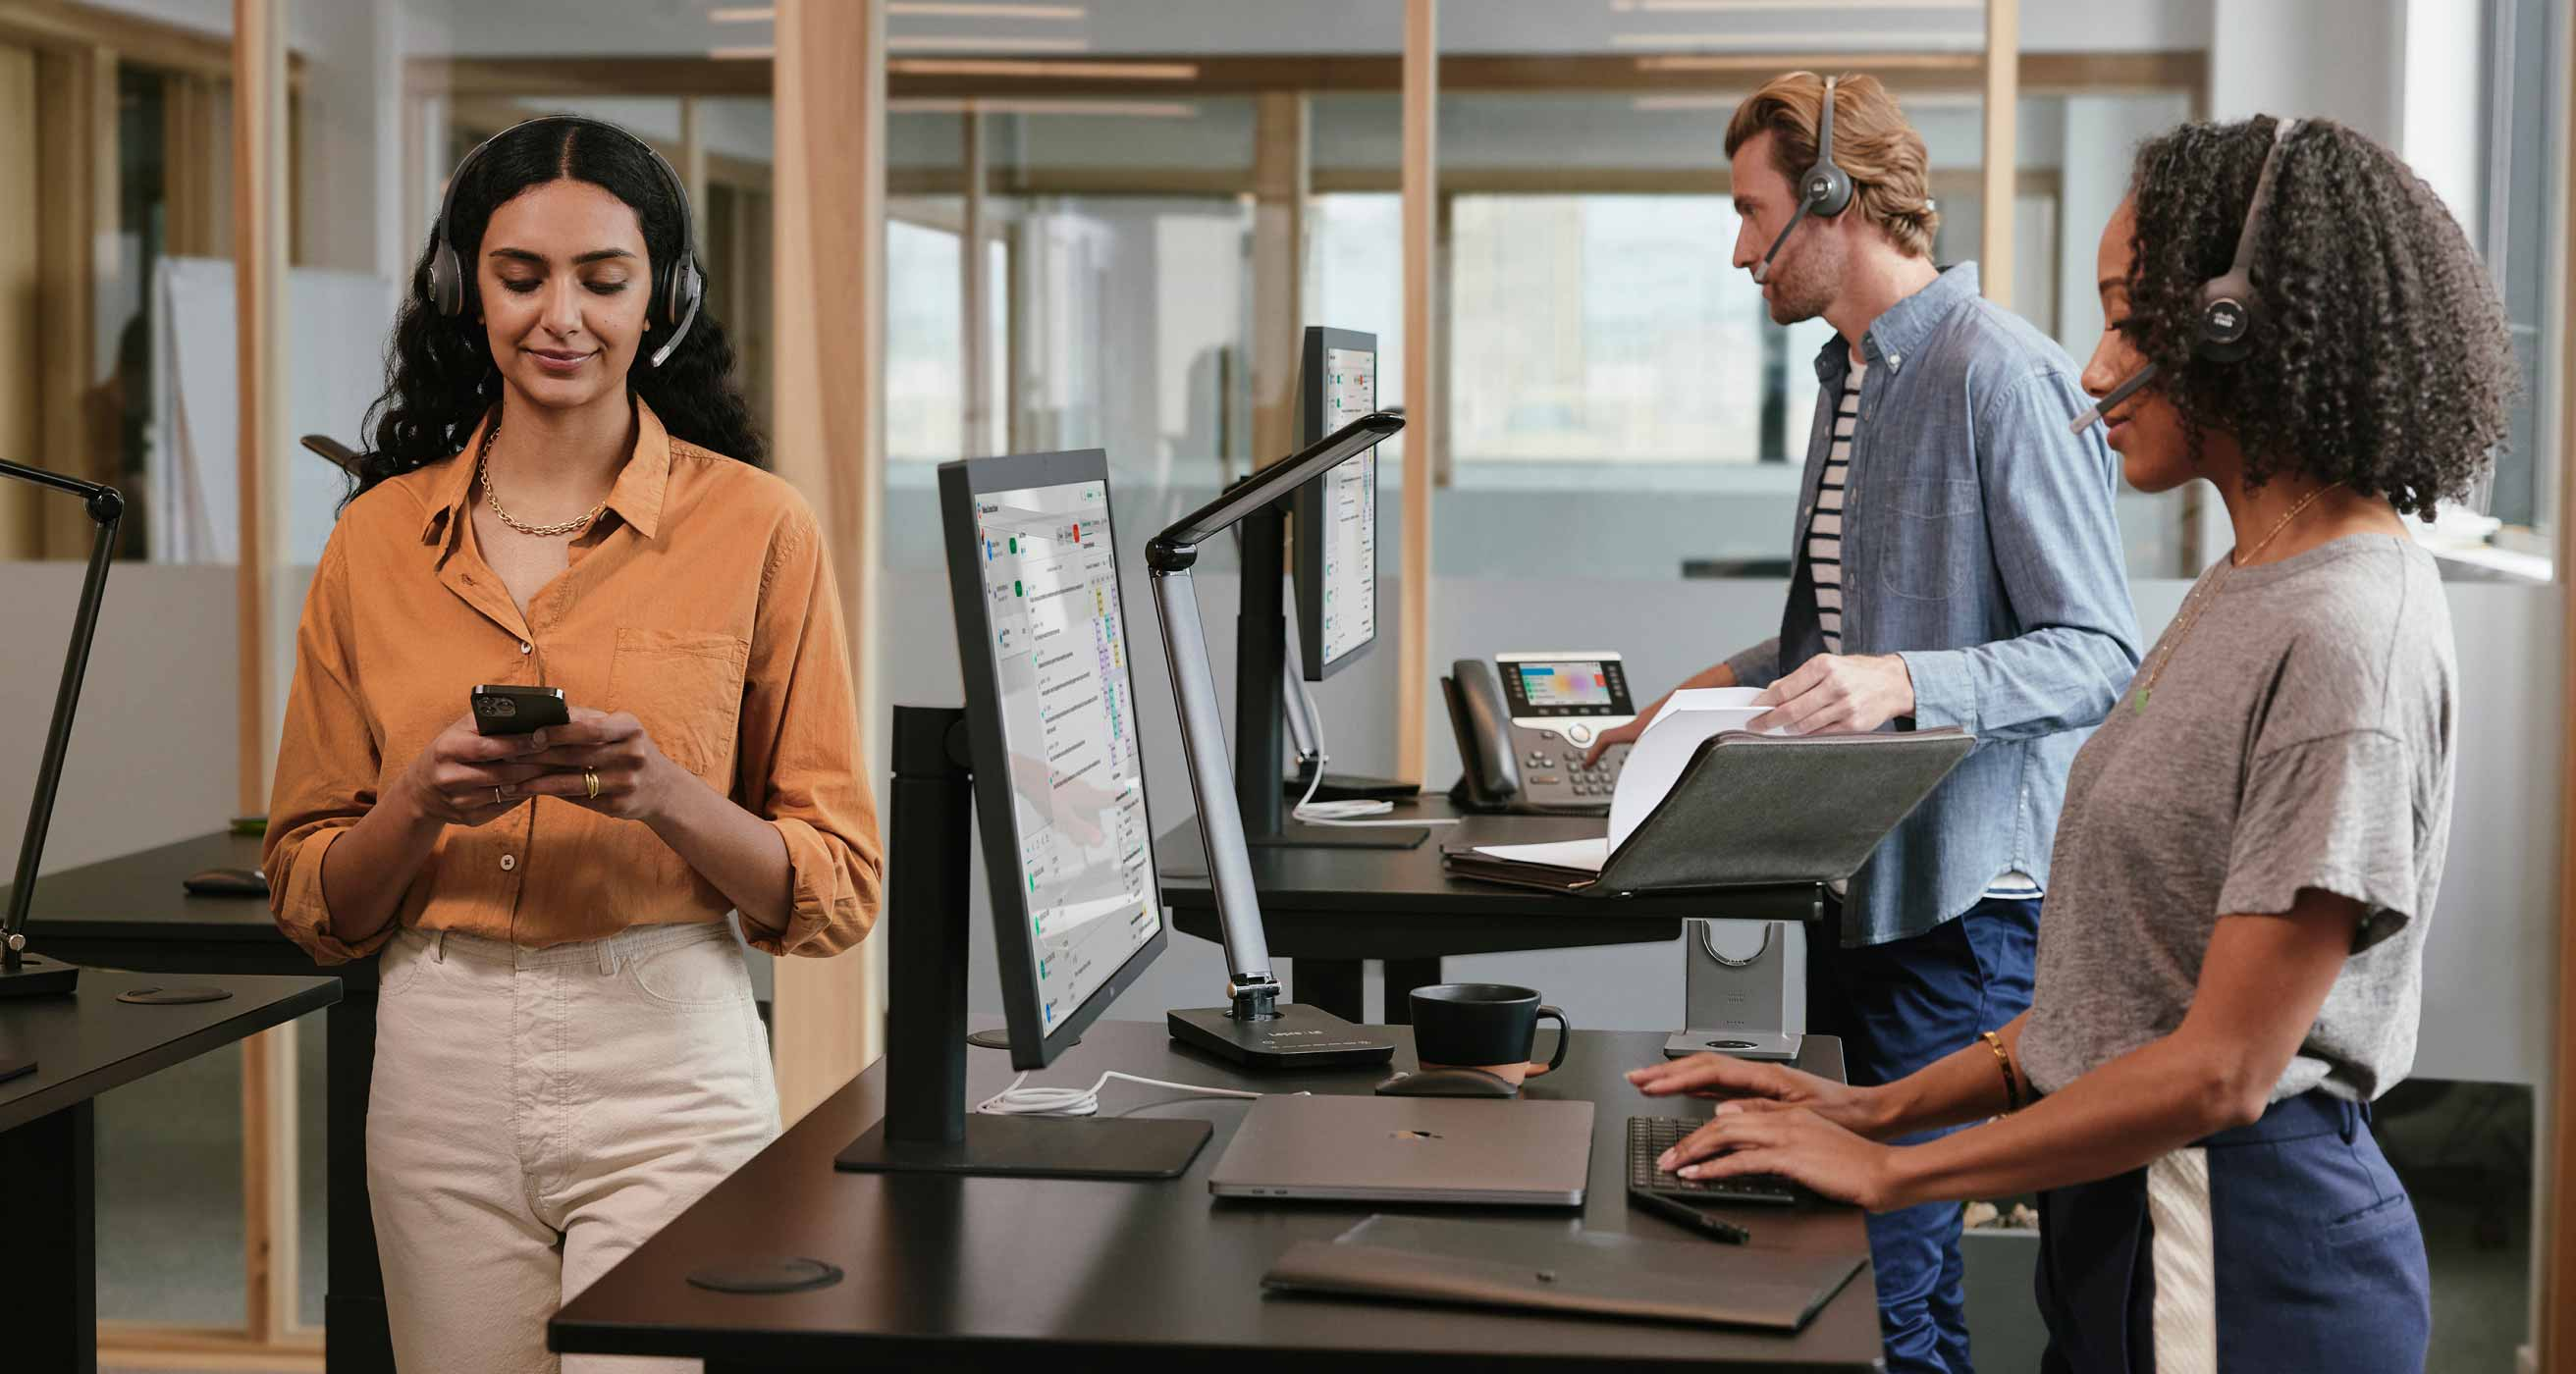 Tons of Changes Headed to Webex; Here's What We Know